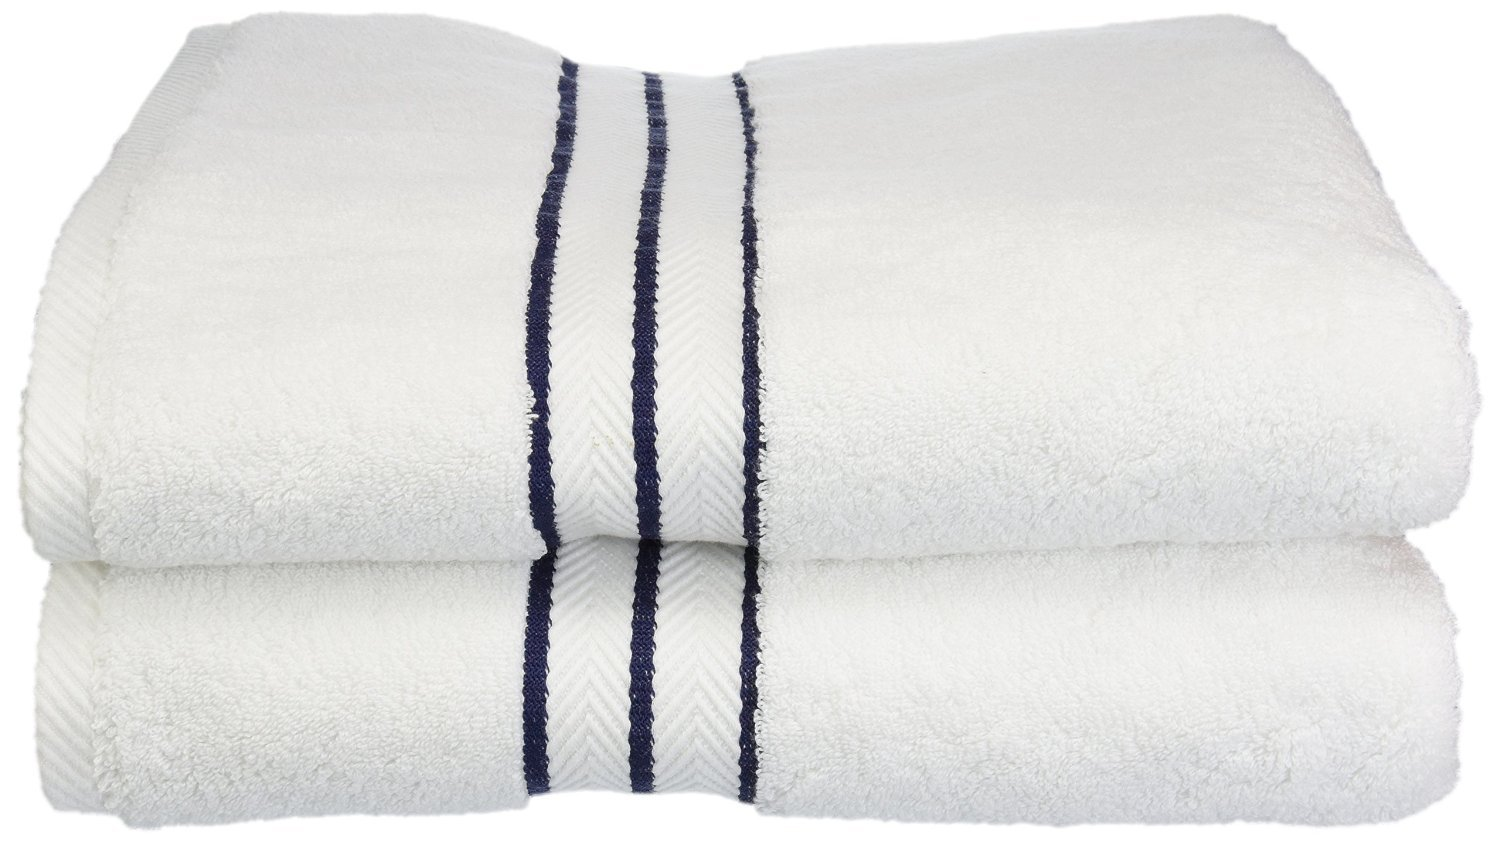 White Navy bluee Bath Towel Set Superior Hotel Collection 900 Gram, Long-Staple Combed Cotton 6 Piece Towel Set, White with Black Border